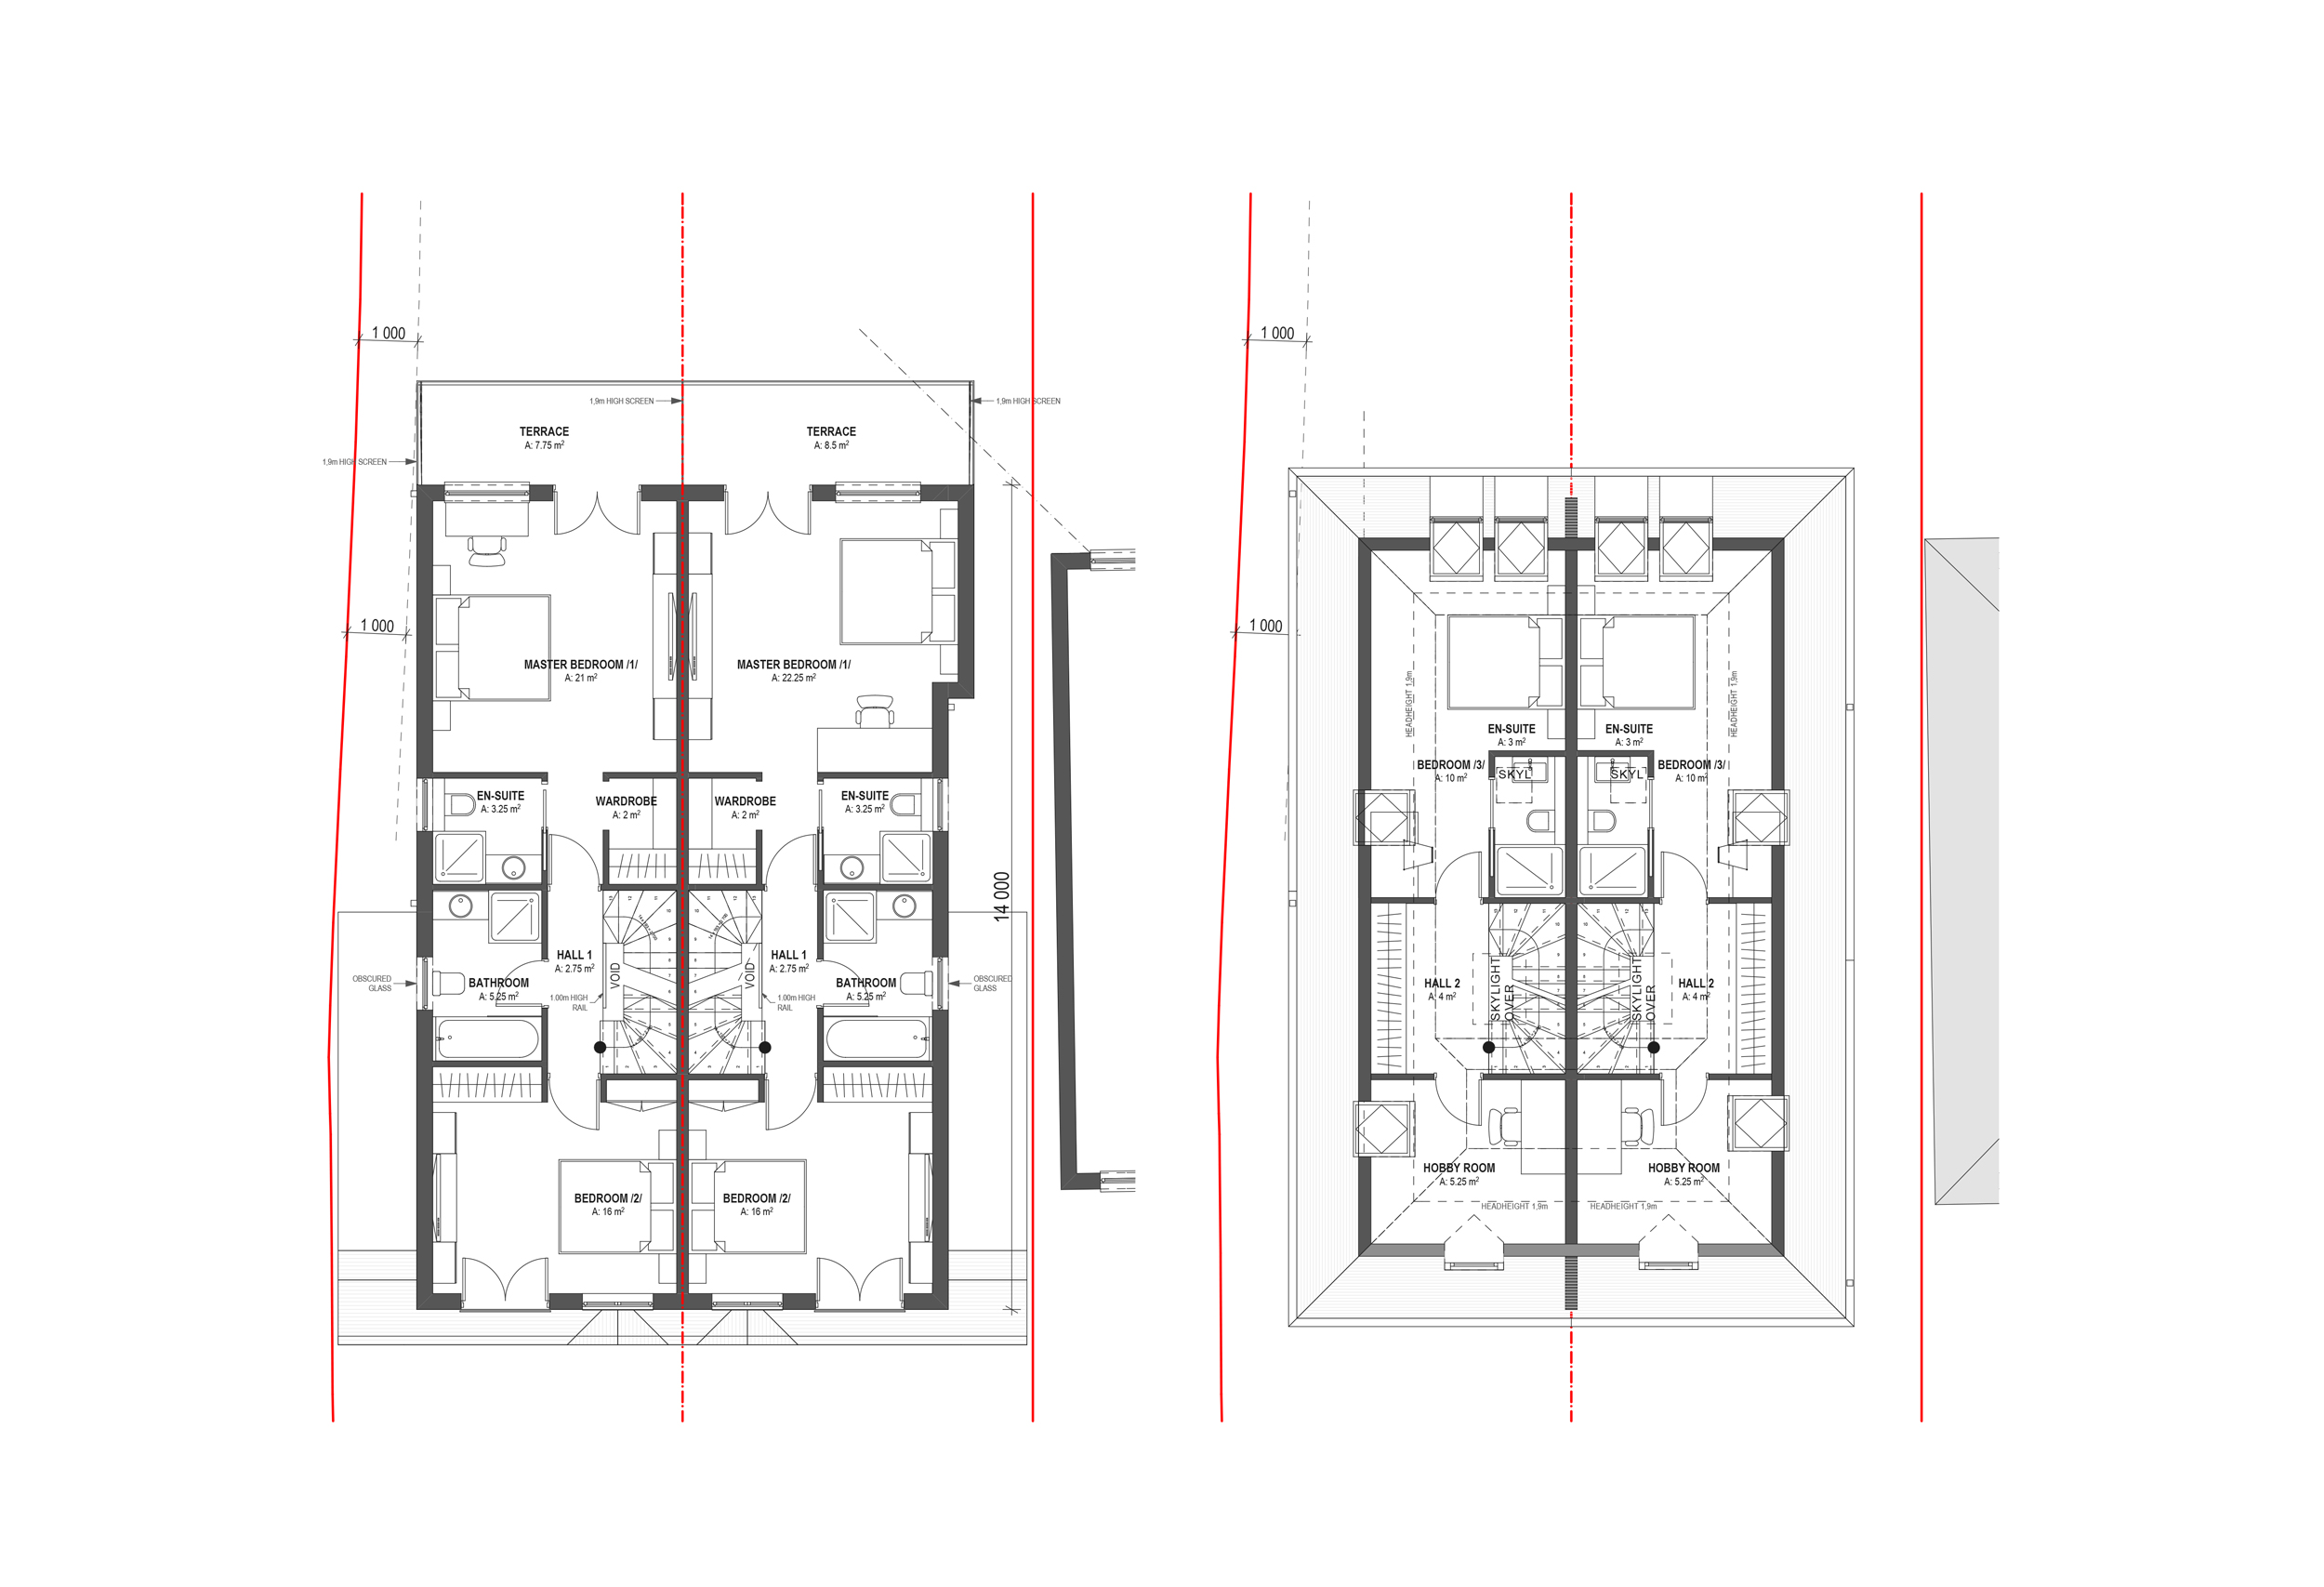 PROPOSED FIRST AND SECOND FLOOR PLAN